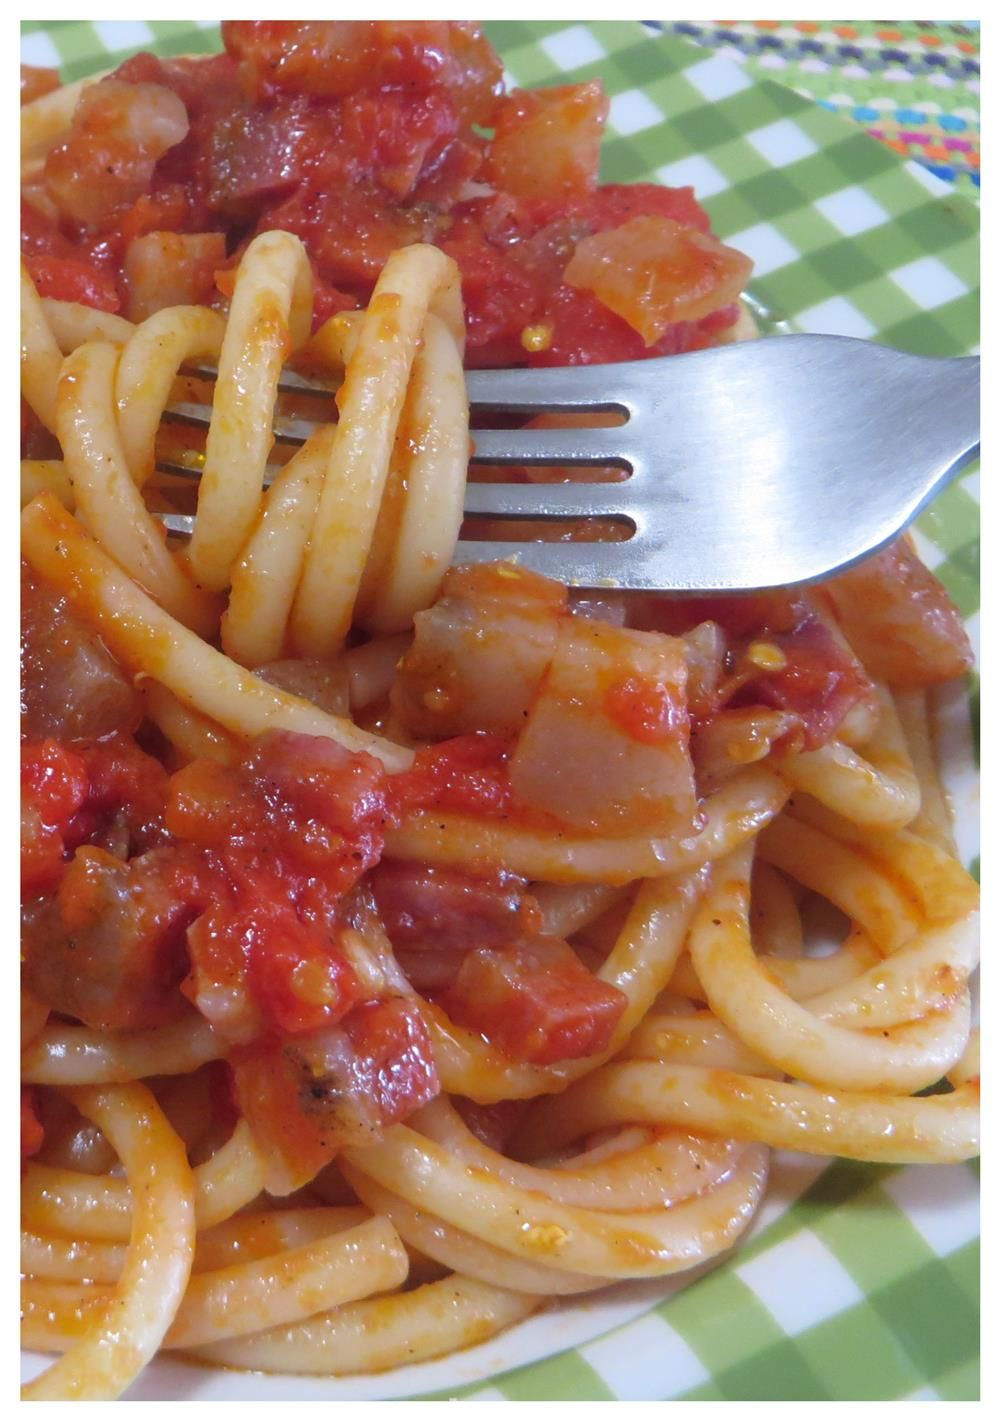 93ba782ca0a494f0af3eeed9afaf6cba - Ricette Amatriciana